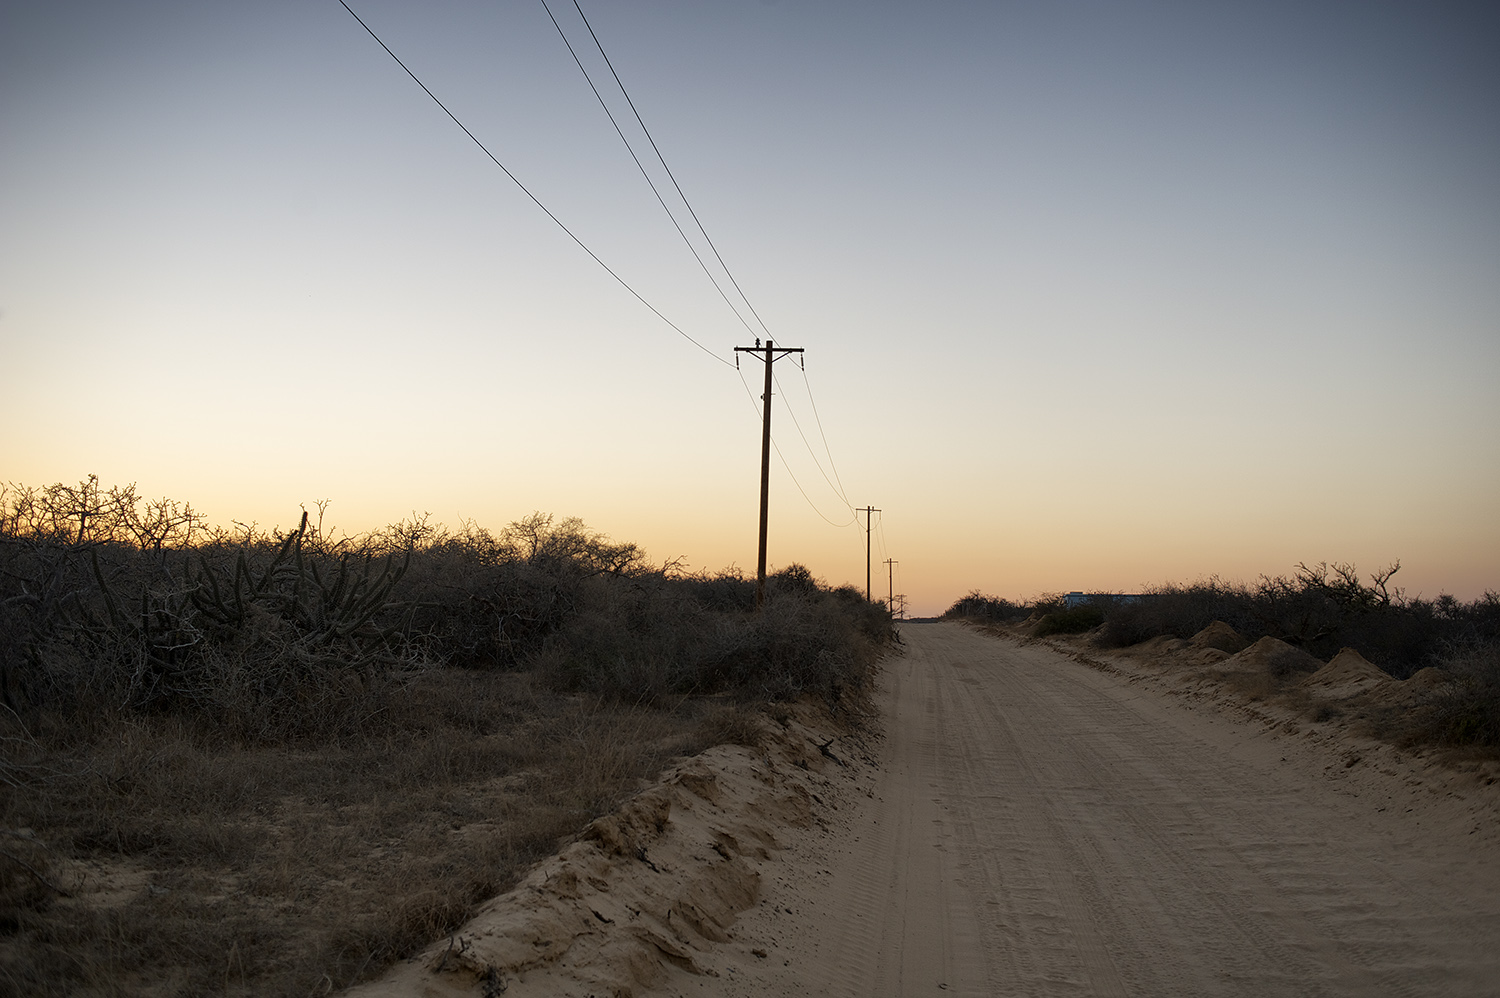 A typical East Cape Dirt road. There's miles of this type washboard along the coast.